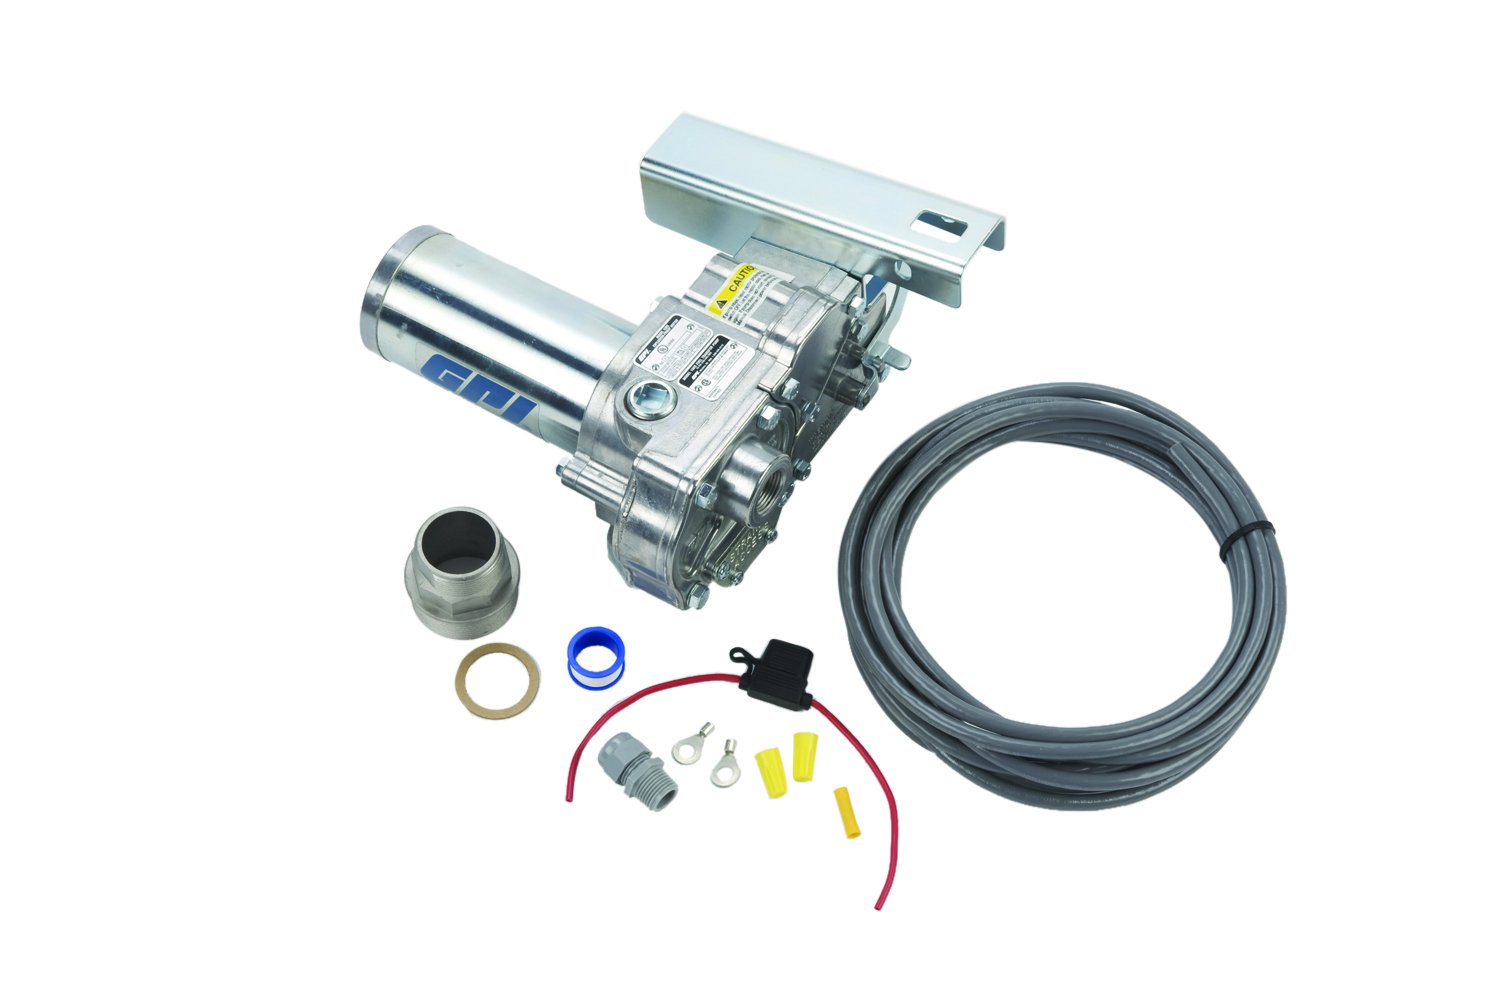 18-Foot Power Cord 12-VDC 18 GPM Spin Collar Accessories Sold Separately M-180-PO GPI 110300-7 M-180S-PO Aluminum Fuel Transfer Pump